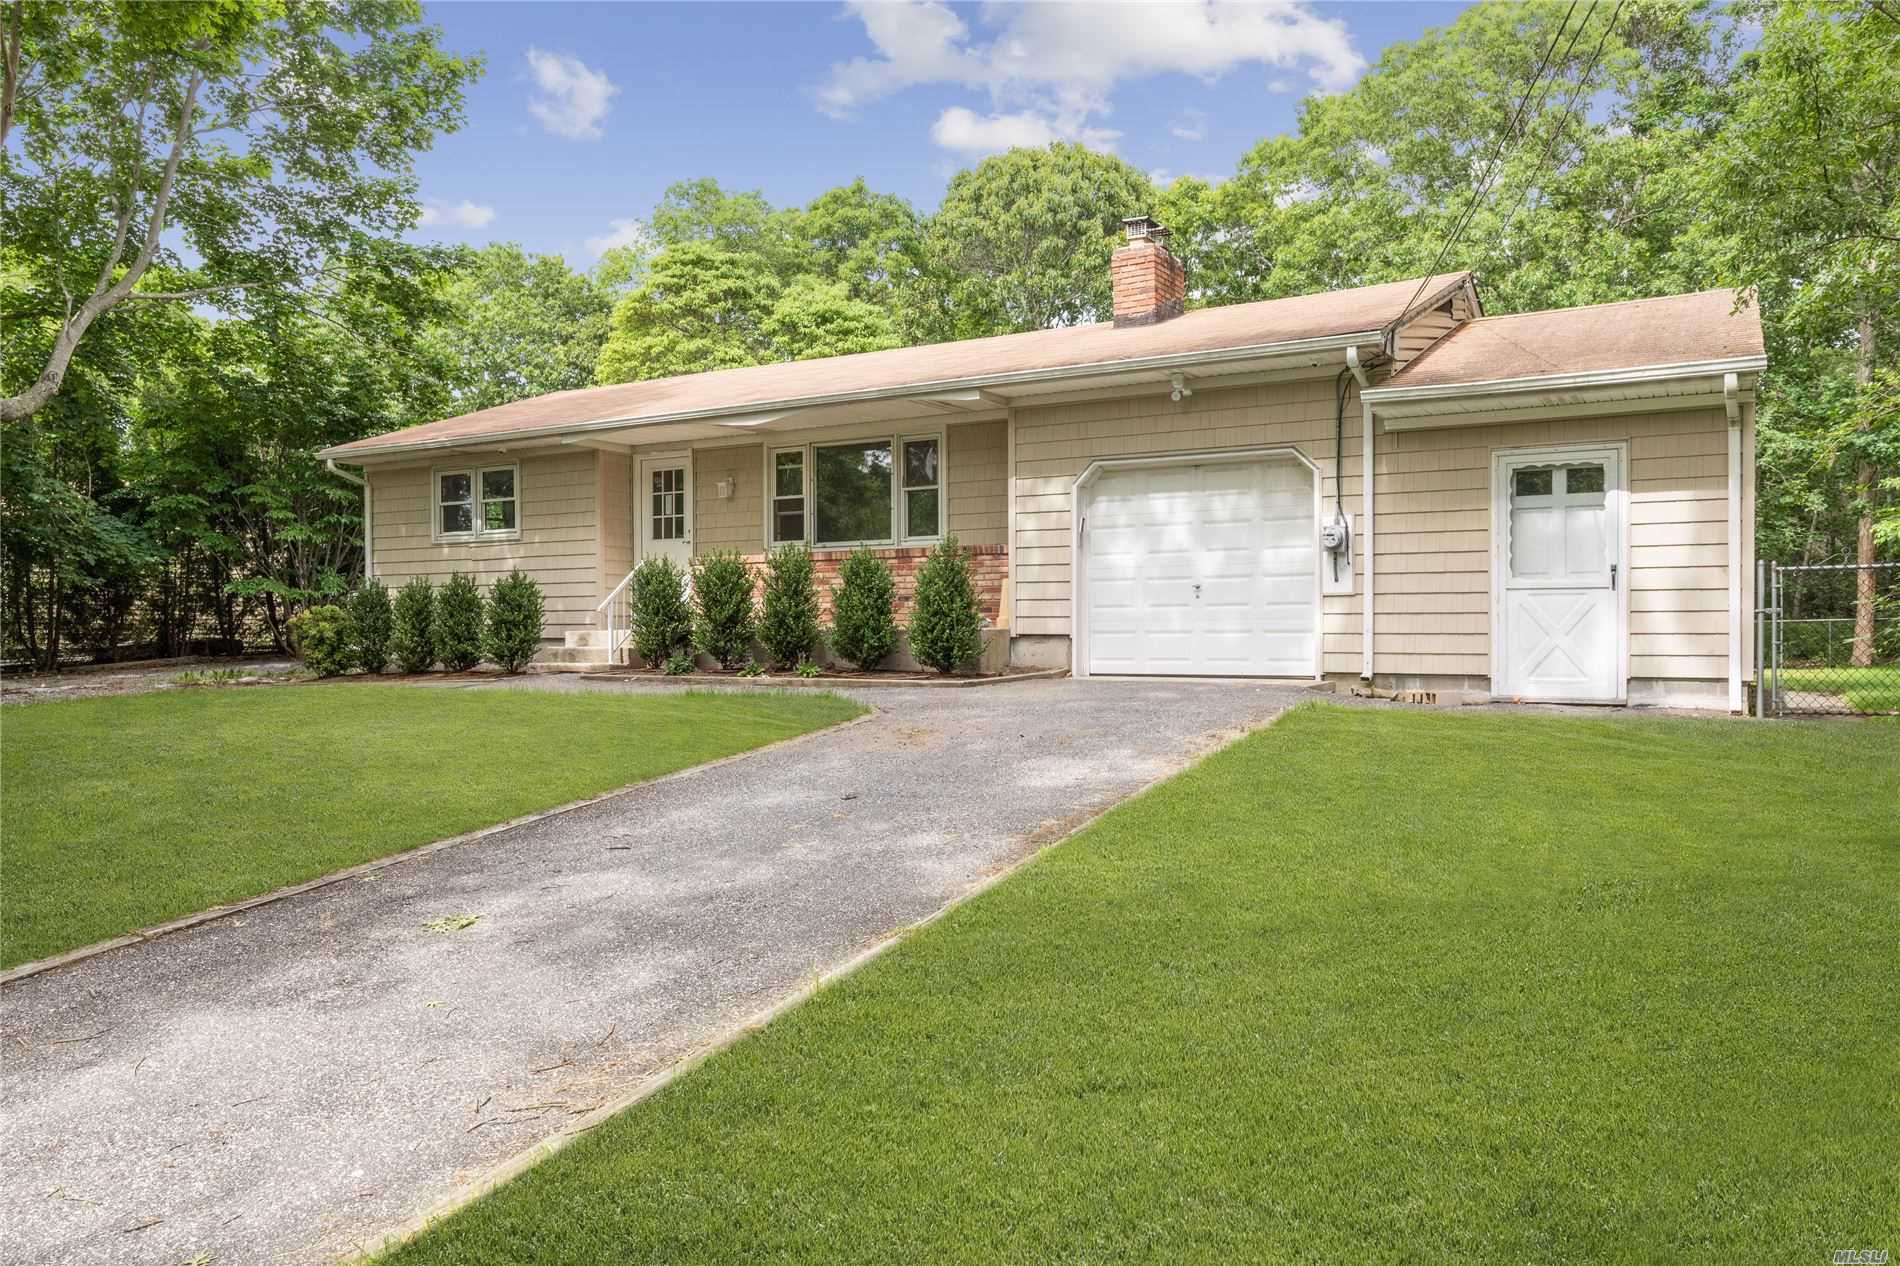 Photo of home for sale at 7 Columbine Ave, Hampton Bays NY